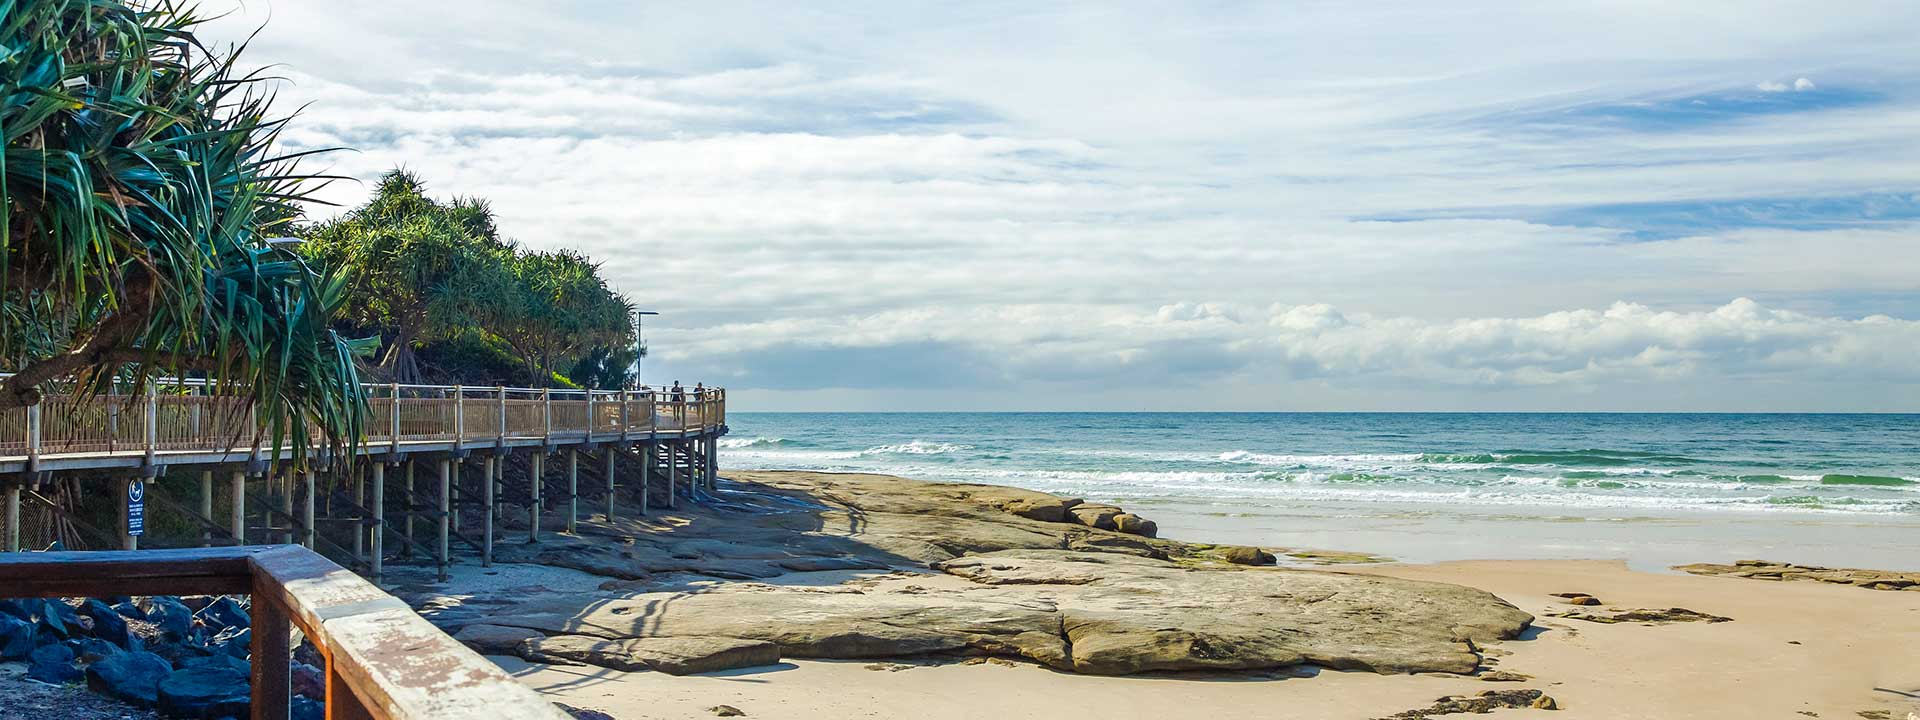 Enjoy the sea breeze along the Caloundra Coastal Walk